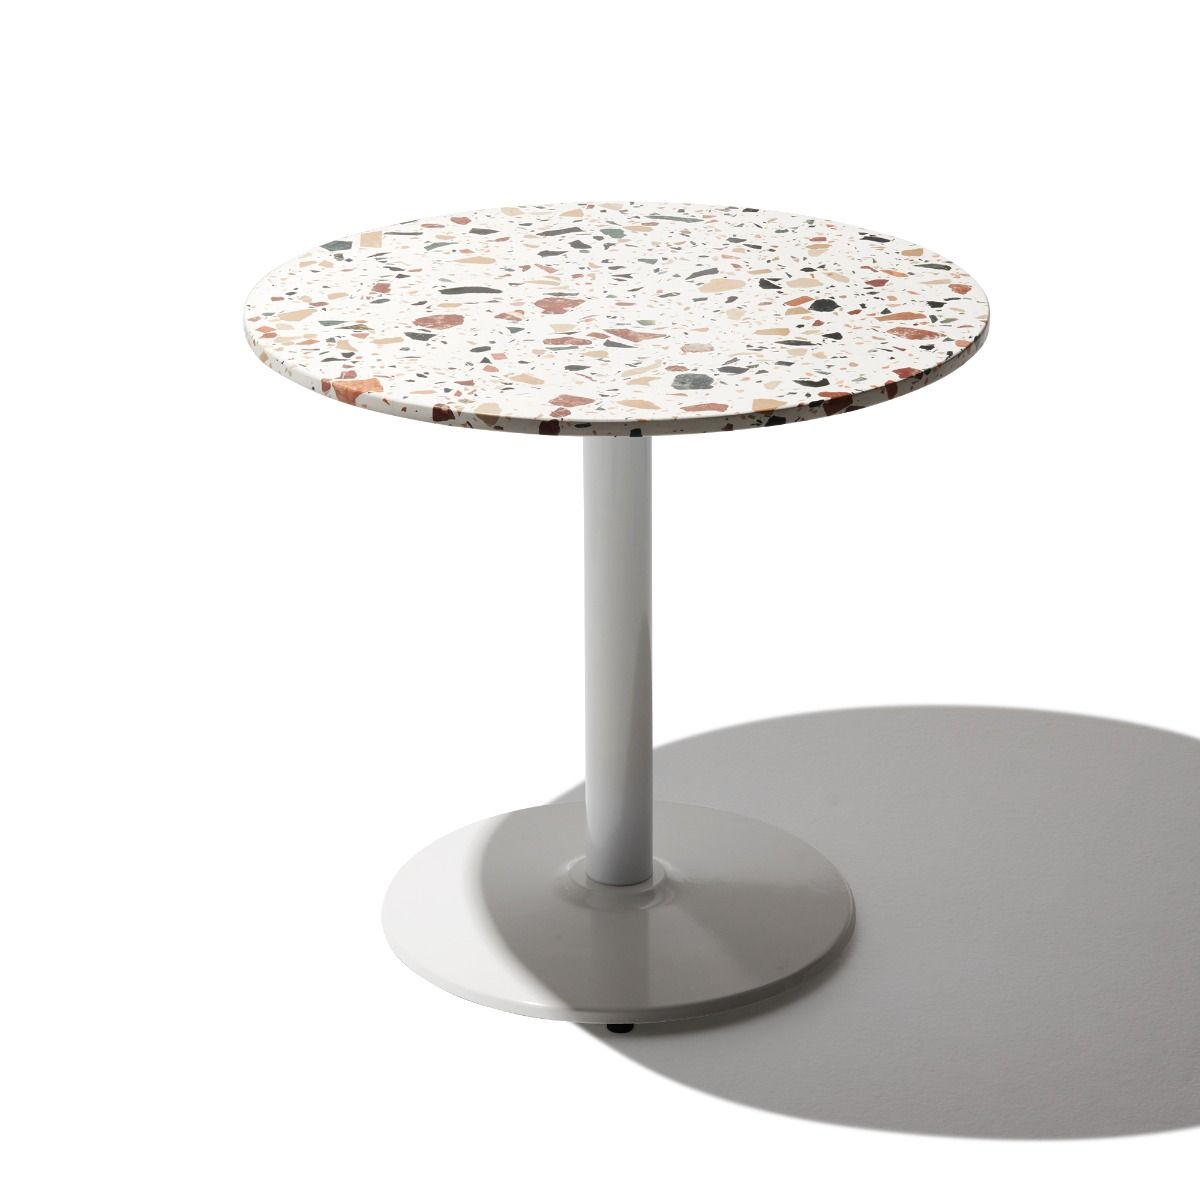 Lark Terrazzo Dining Table In 2020 Dining Table Table Dining